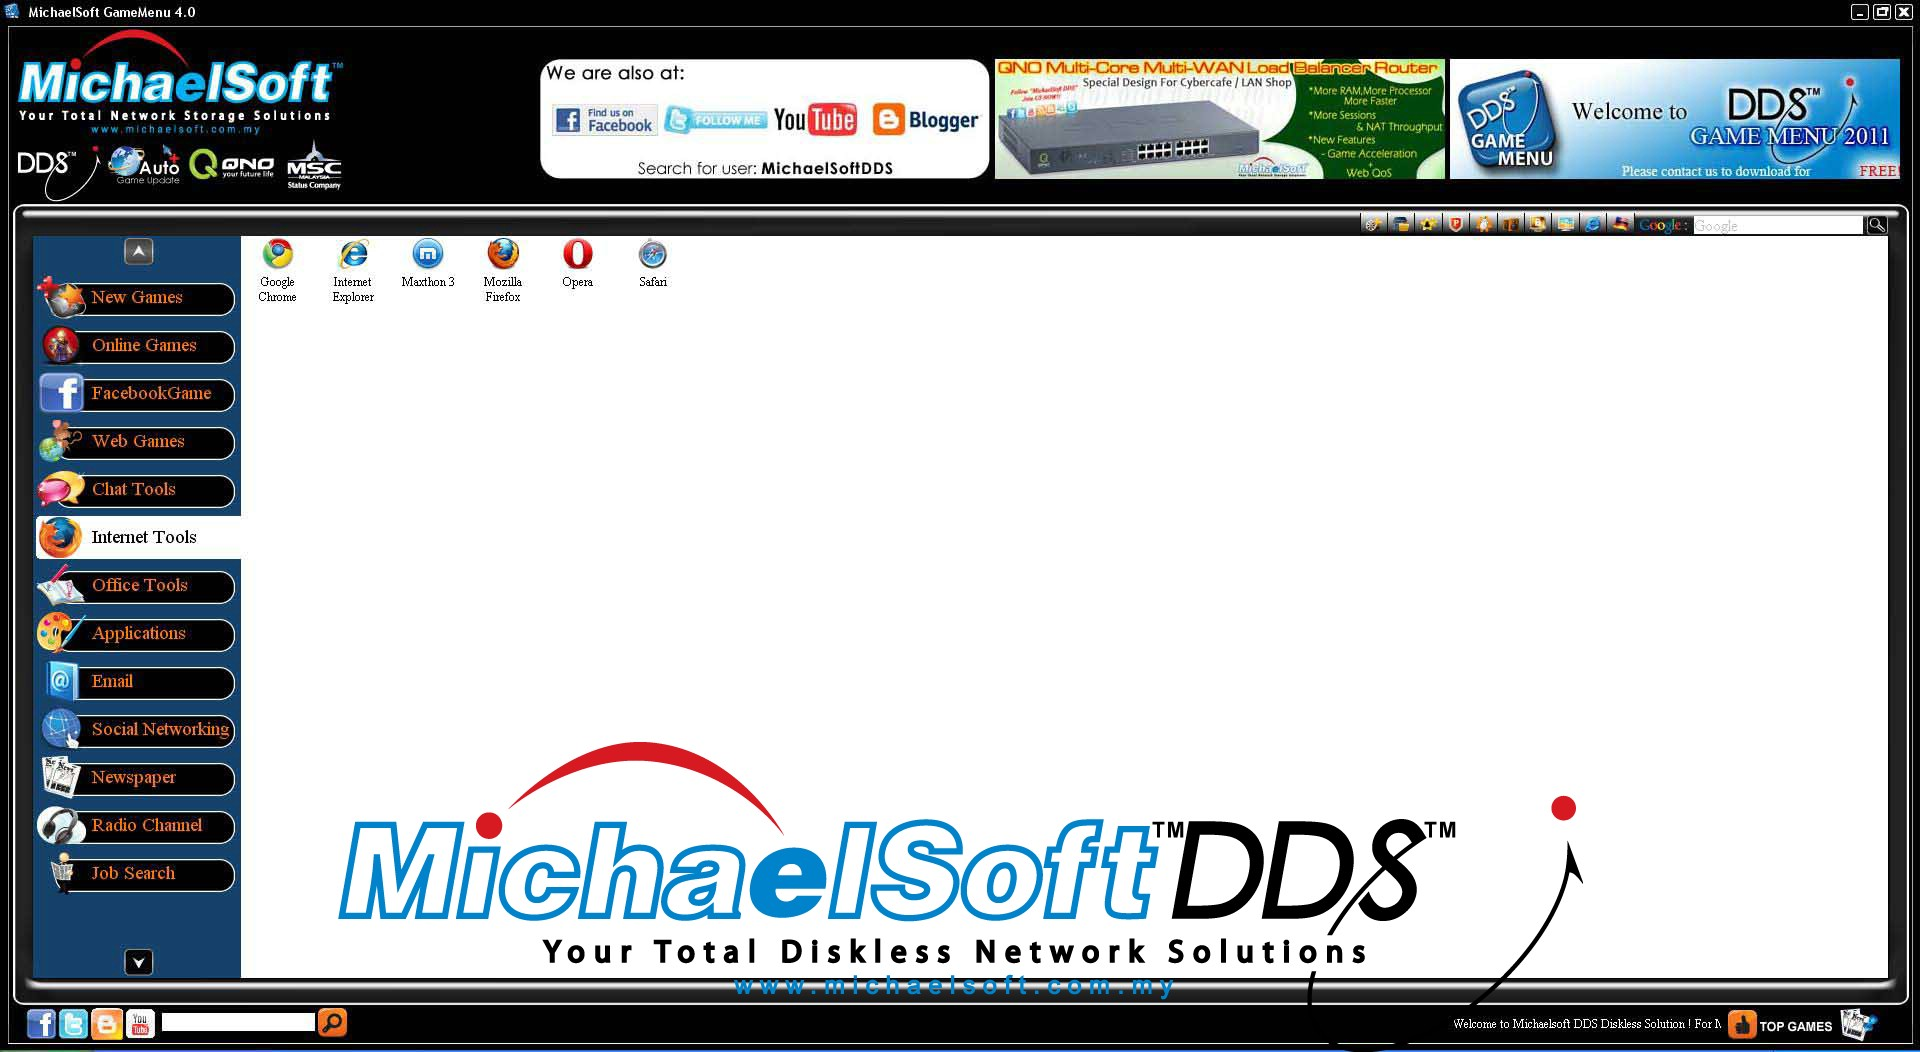 Michaelsoft DDS Diskless Solution , Cloud Computing , Diskless Cybercafe , Diskless System , Michaelsoft DDS Cybercafe Game Menu (Internet Tools)-With different browsers available for you to view and search information, entertainment and email over the internet.